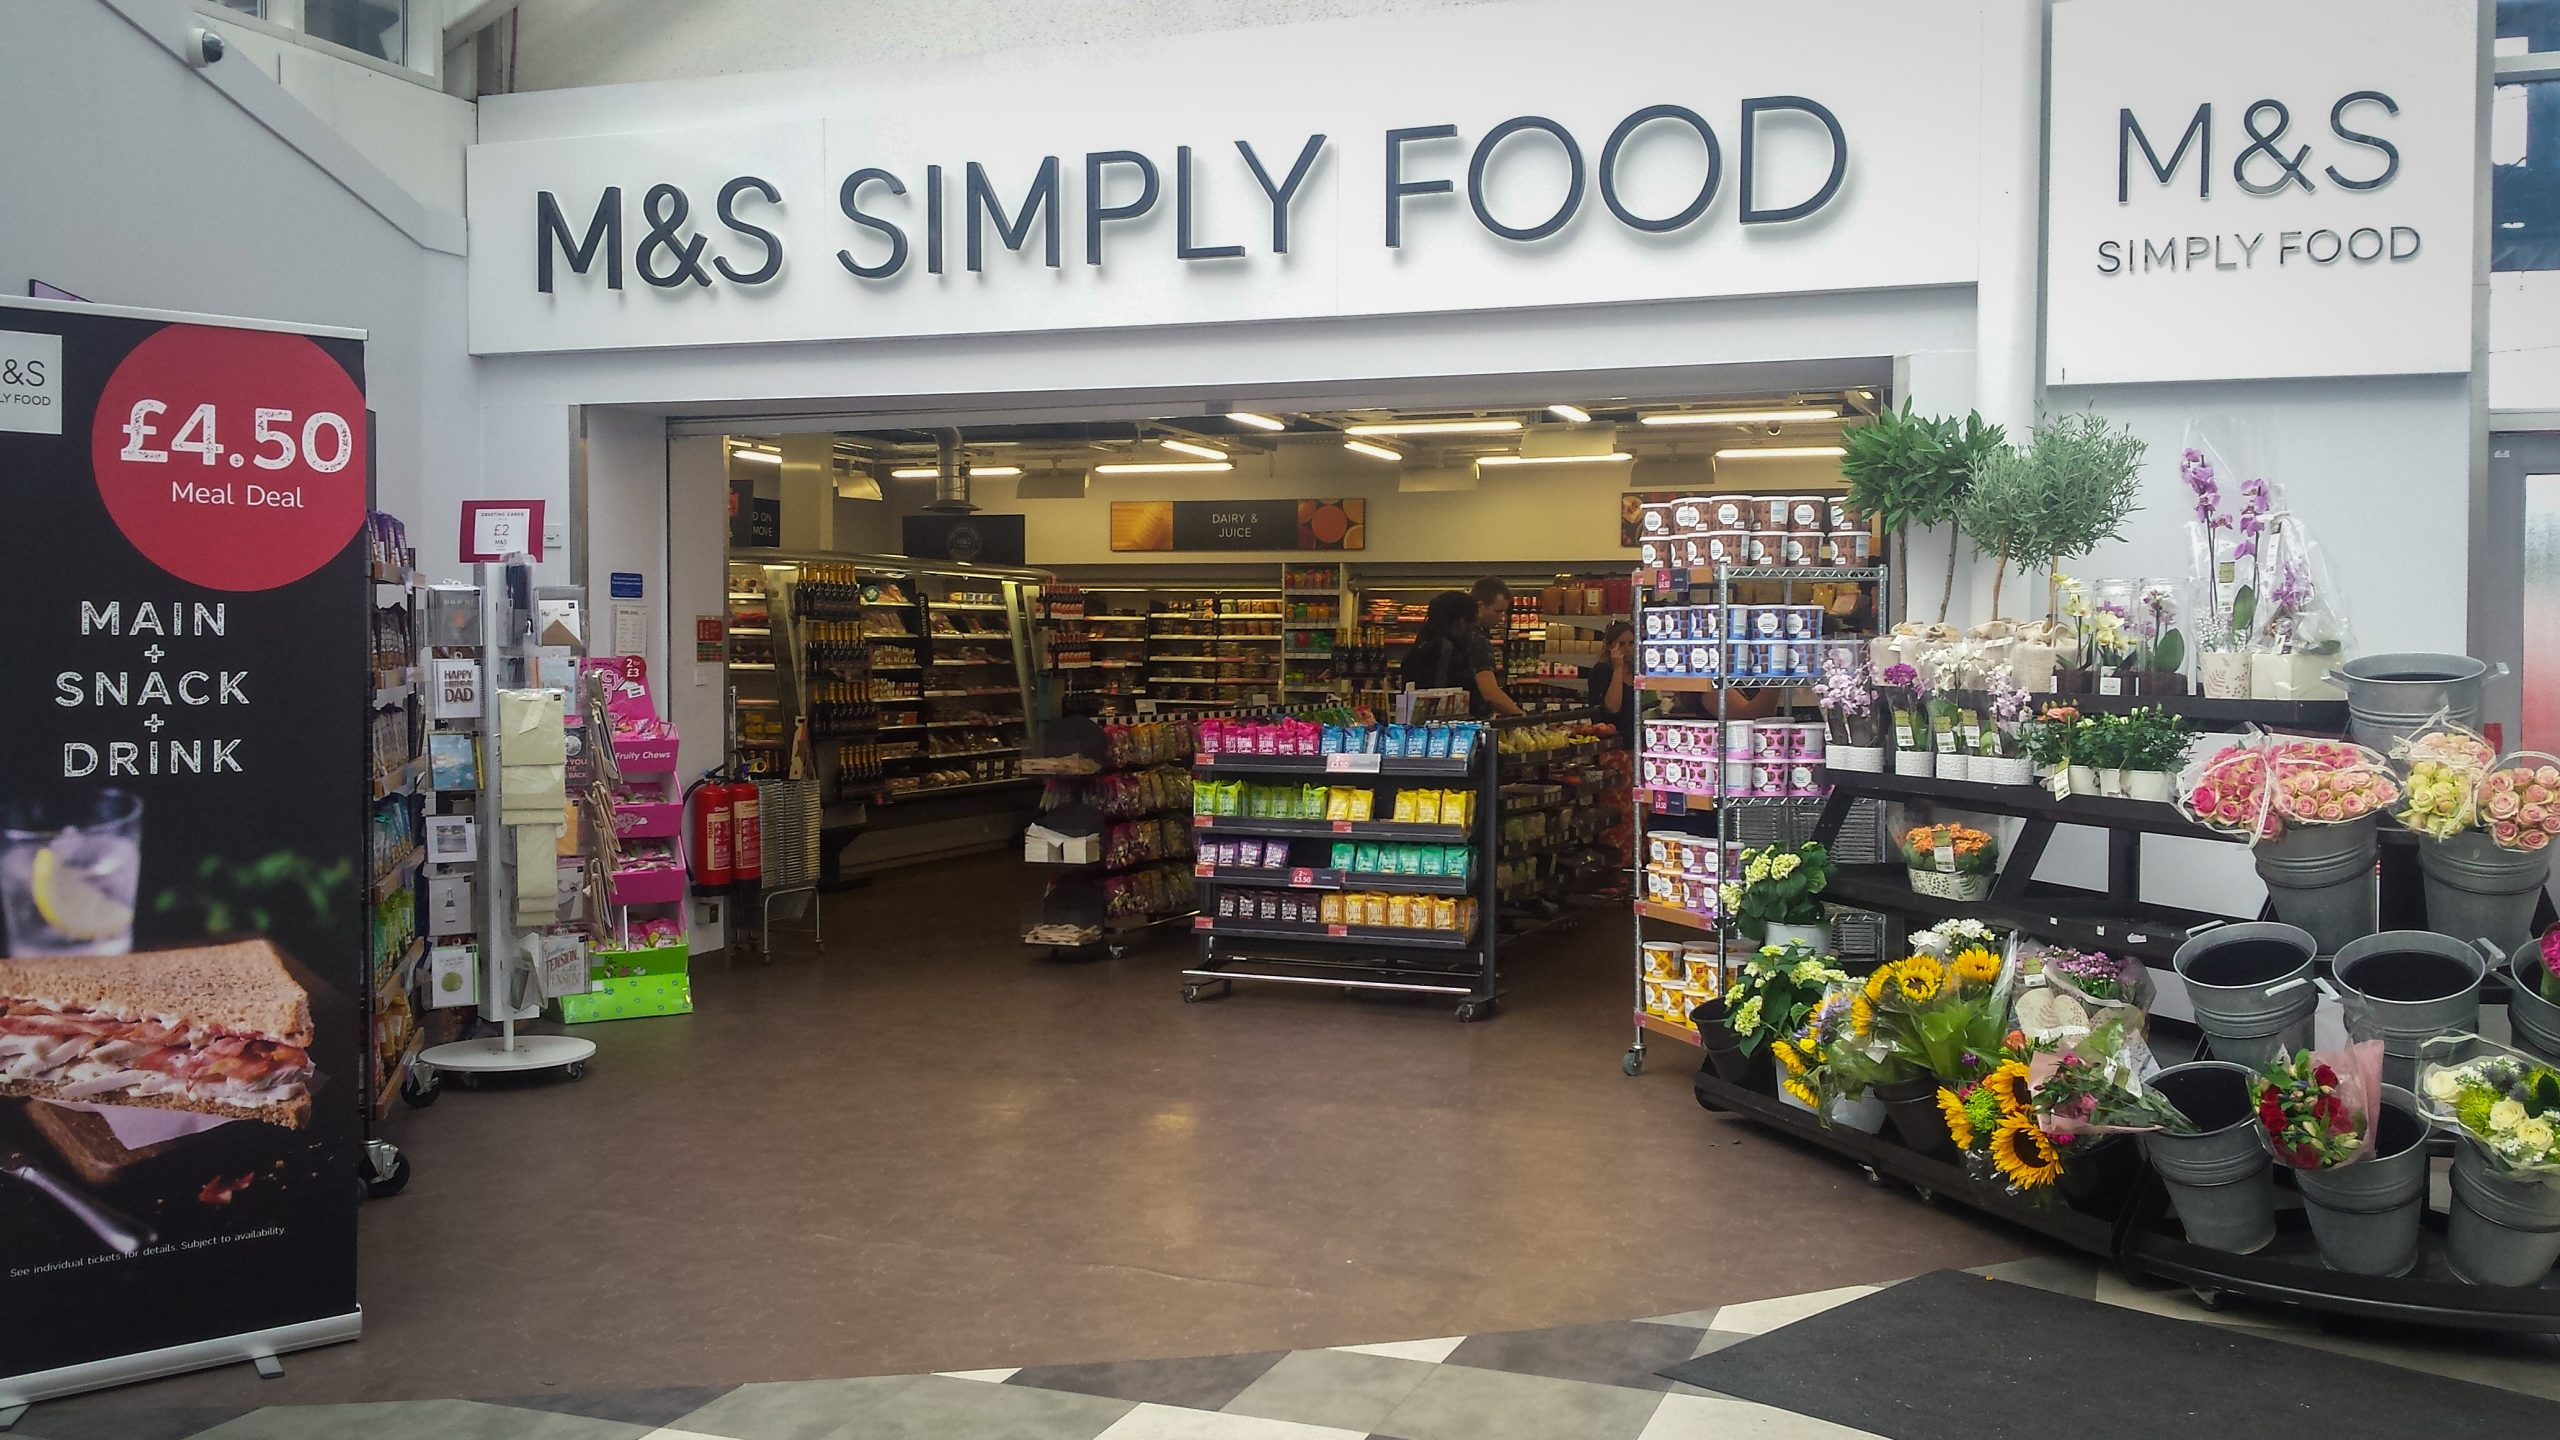 M&S share plans for re-opening